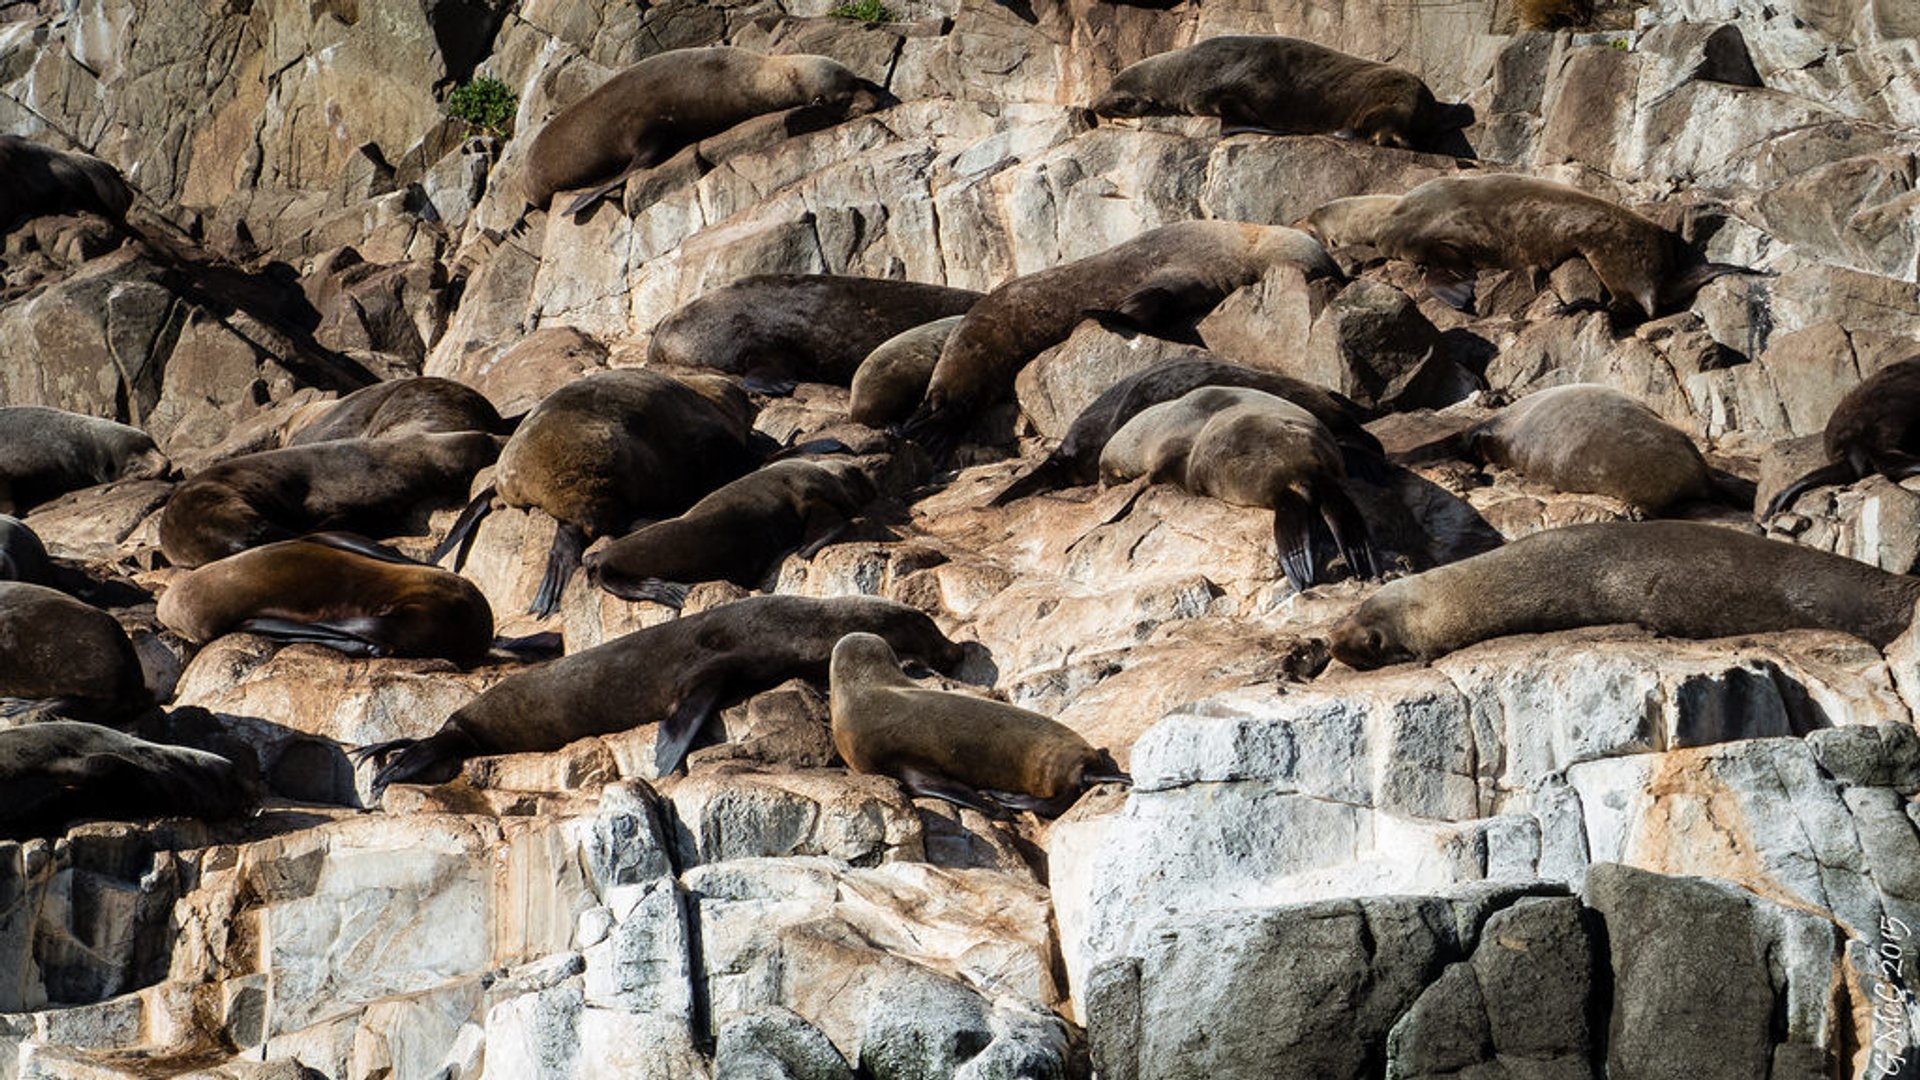 Fur seals in Hobart 2020